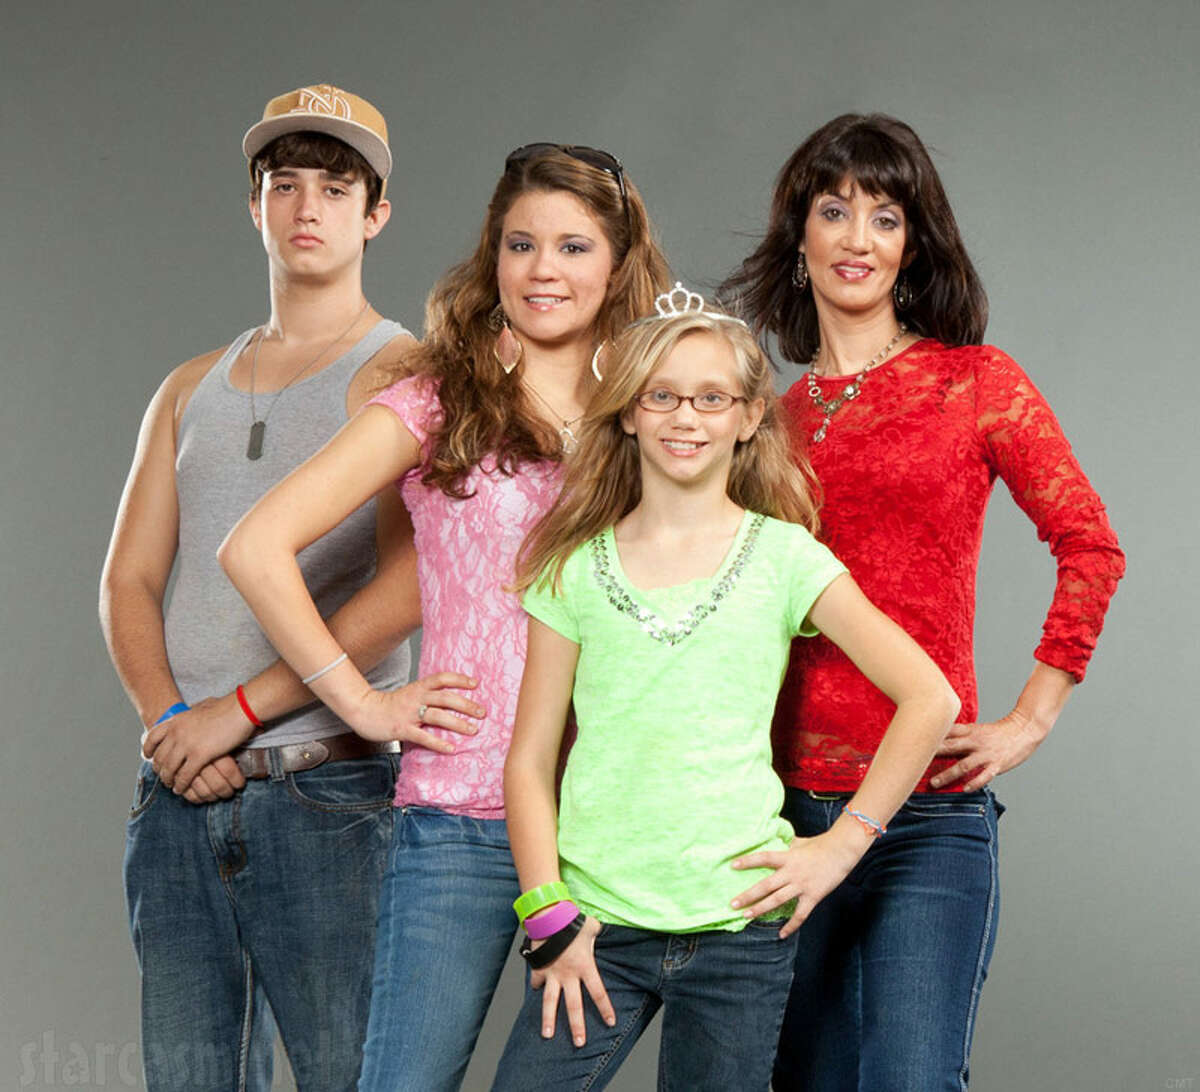 The cast of CMT's